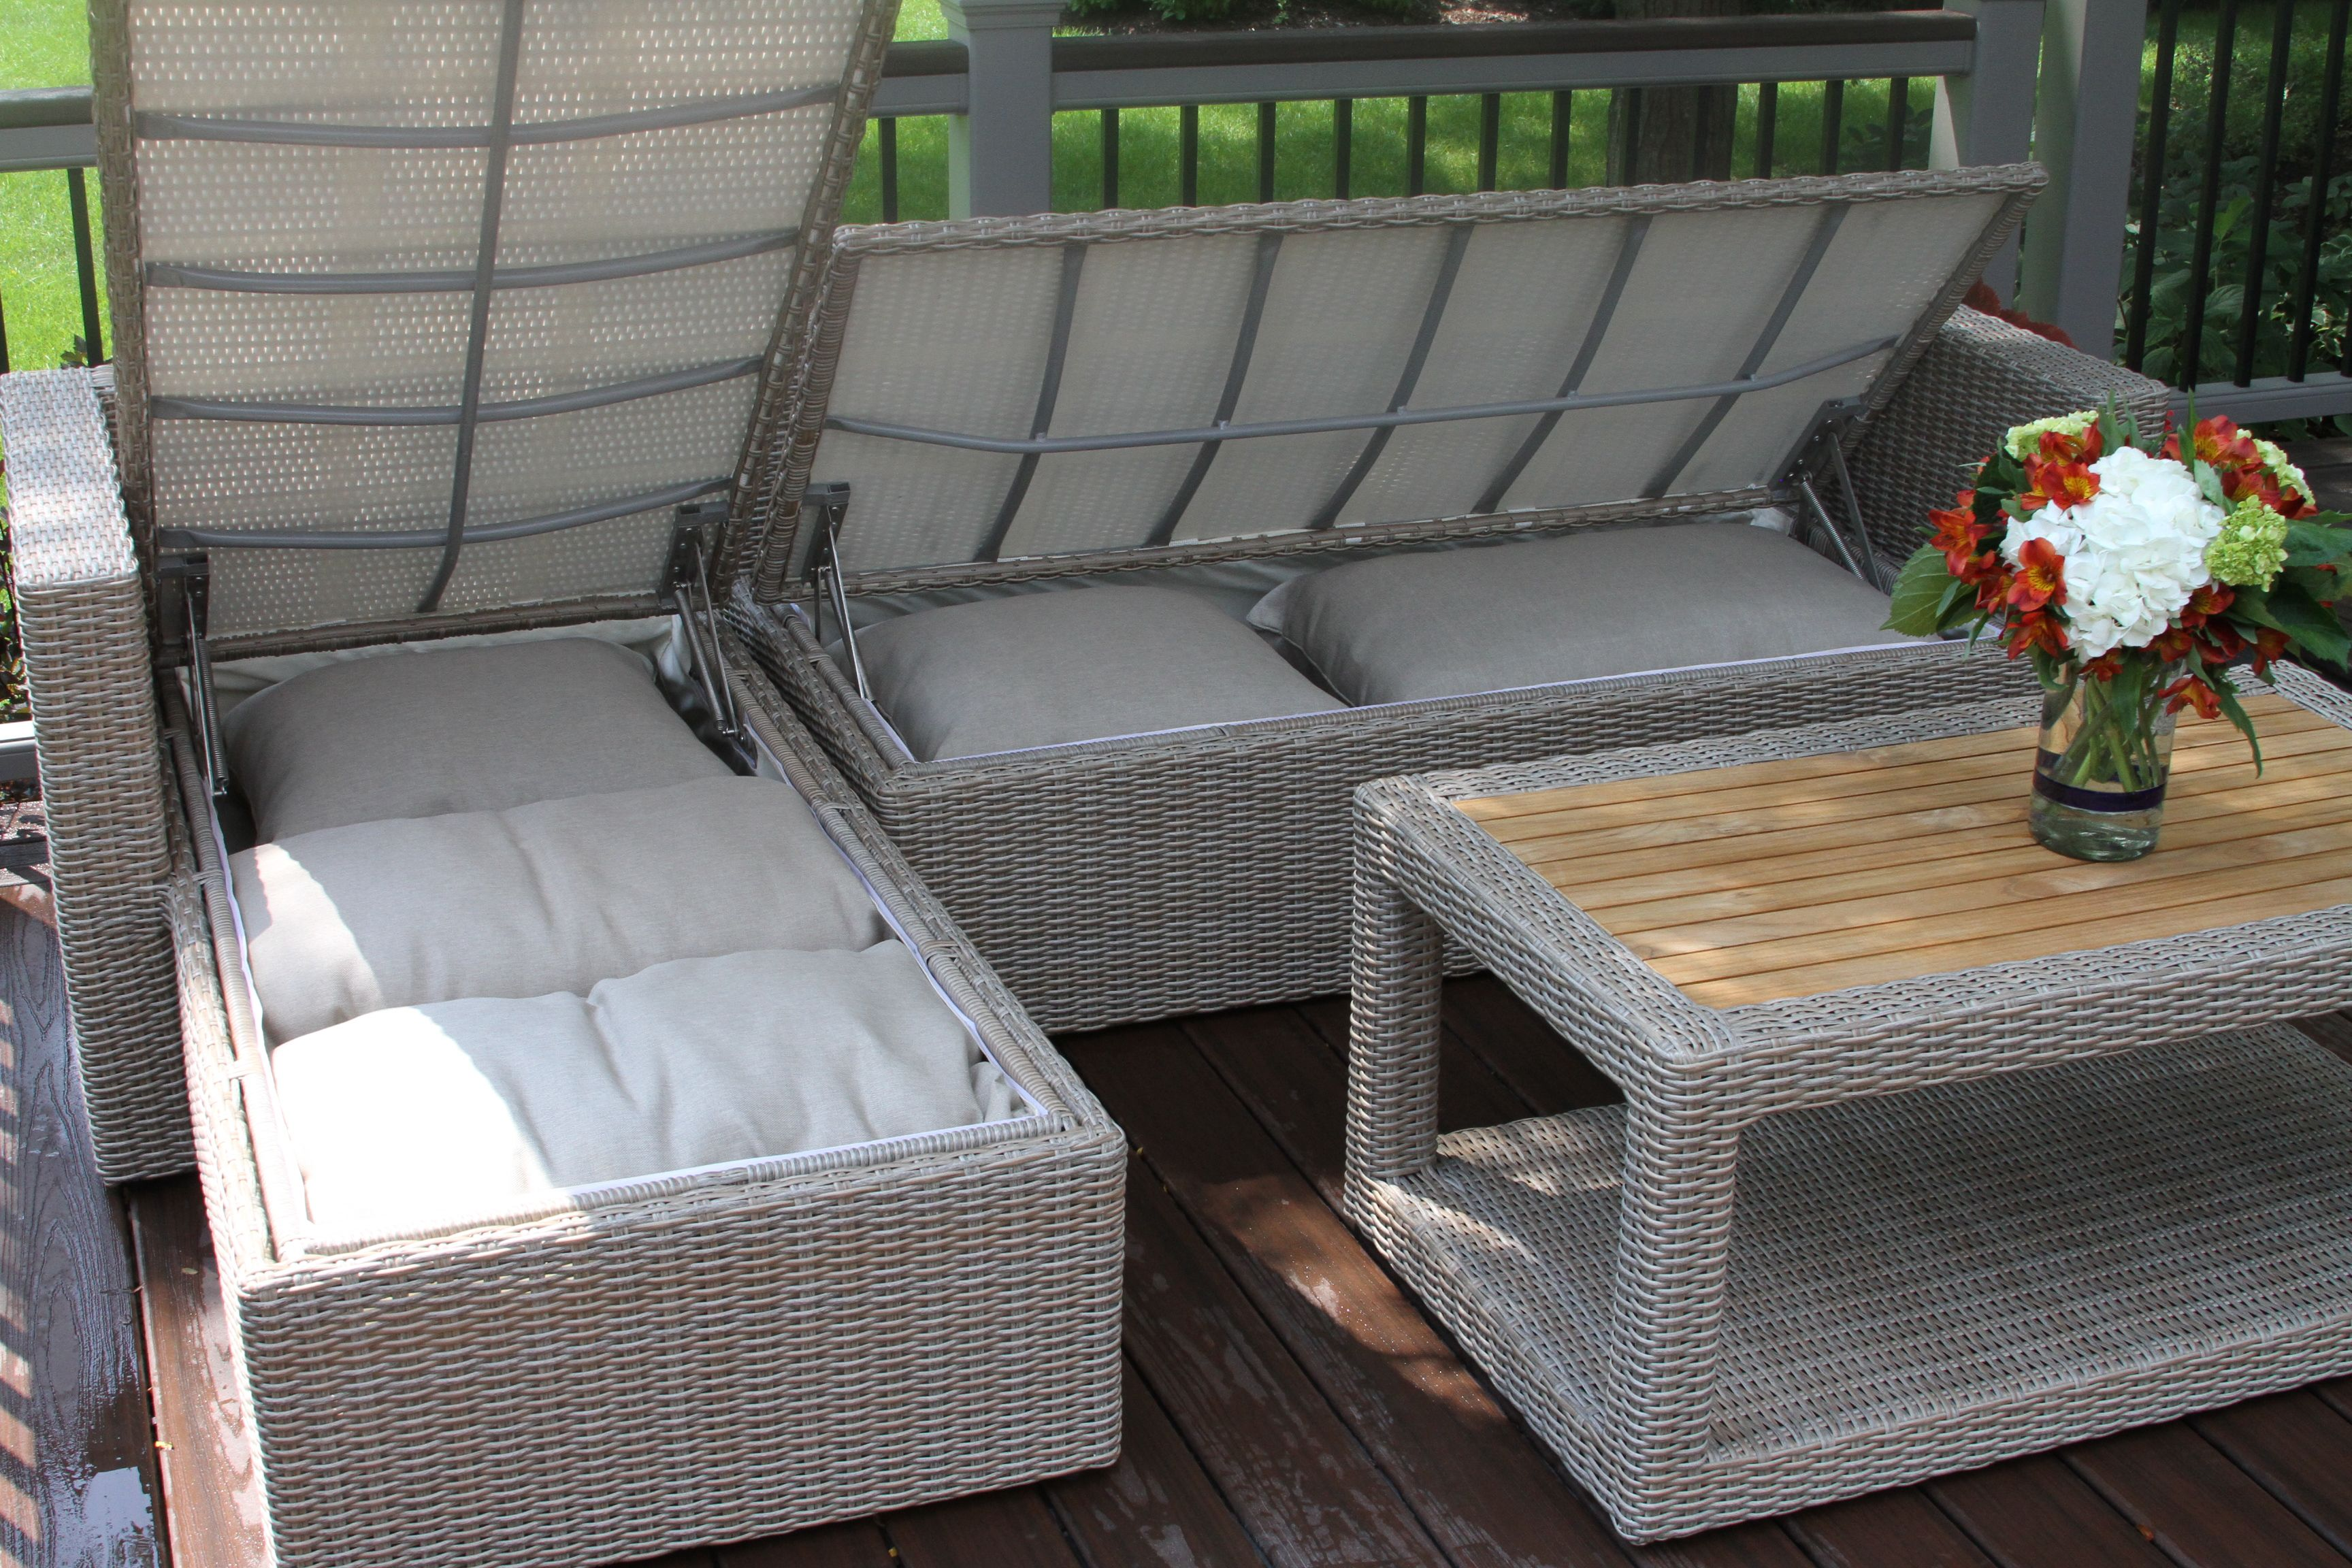 Outdoor Interiors Teak Wicker Sectional With Waterproof Cushion And Pillow Storage Patio Cushion Storage Waterproof Outdoor Cushions Diy Outdoor Cushions